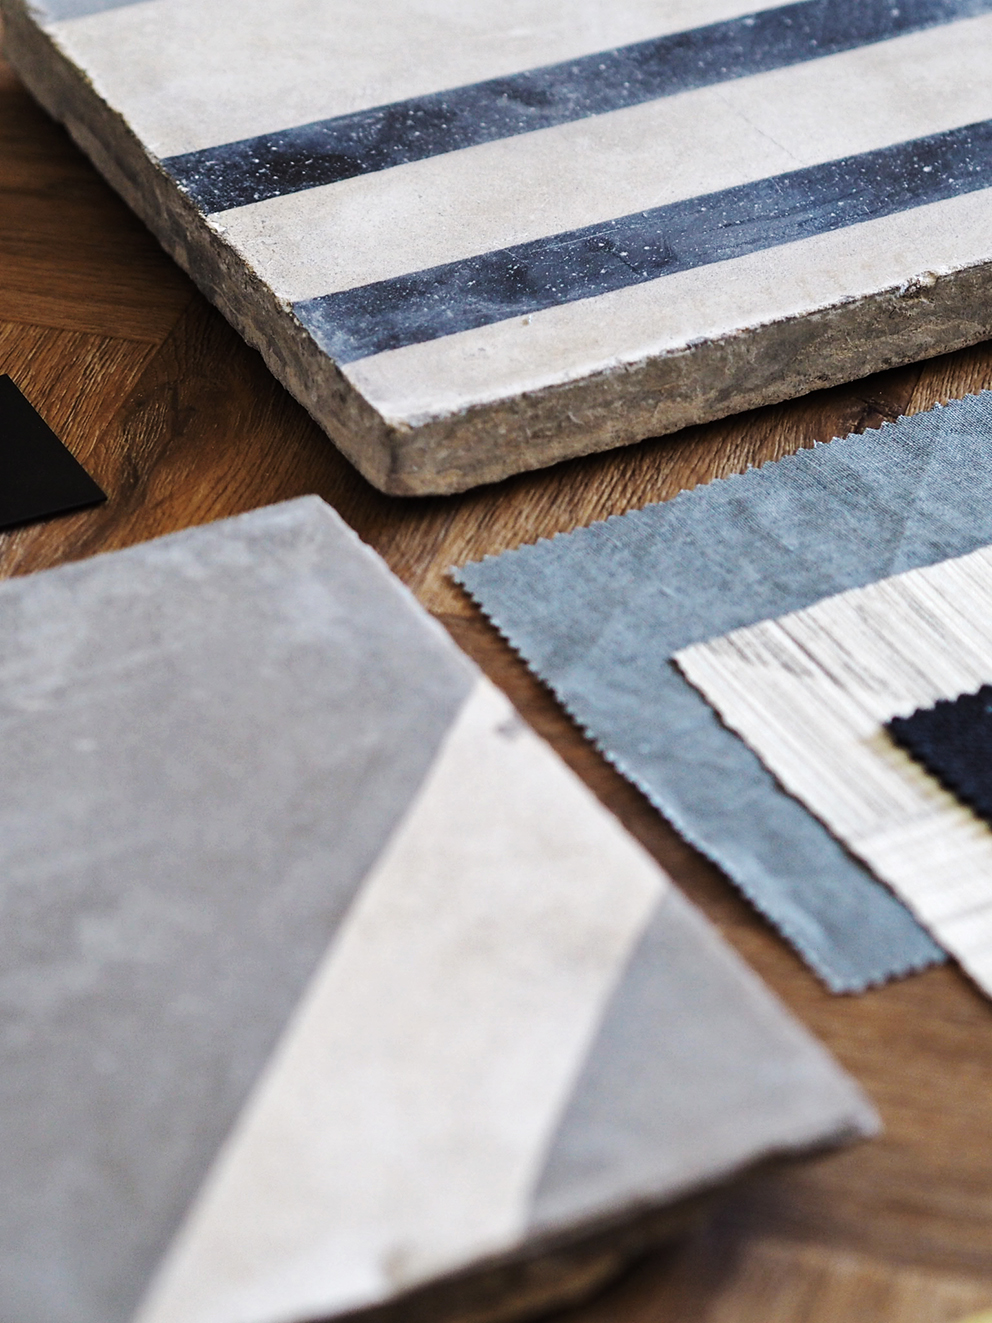 French For Pineapple Blog - Maitland & Poate Antinque Tiles - Monochrom Tiles